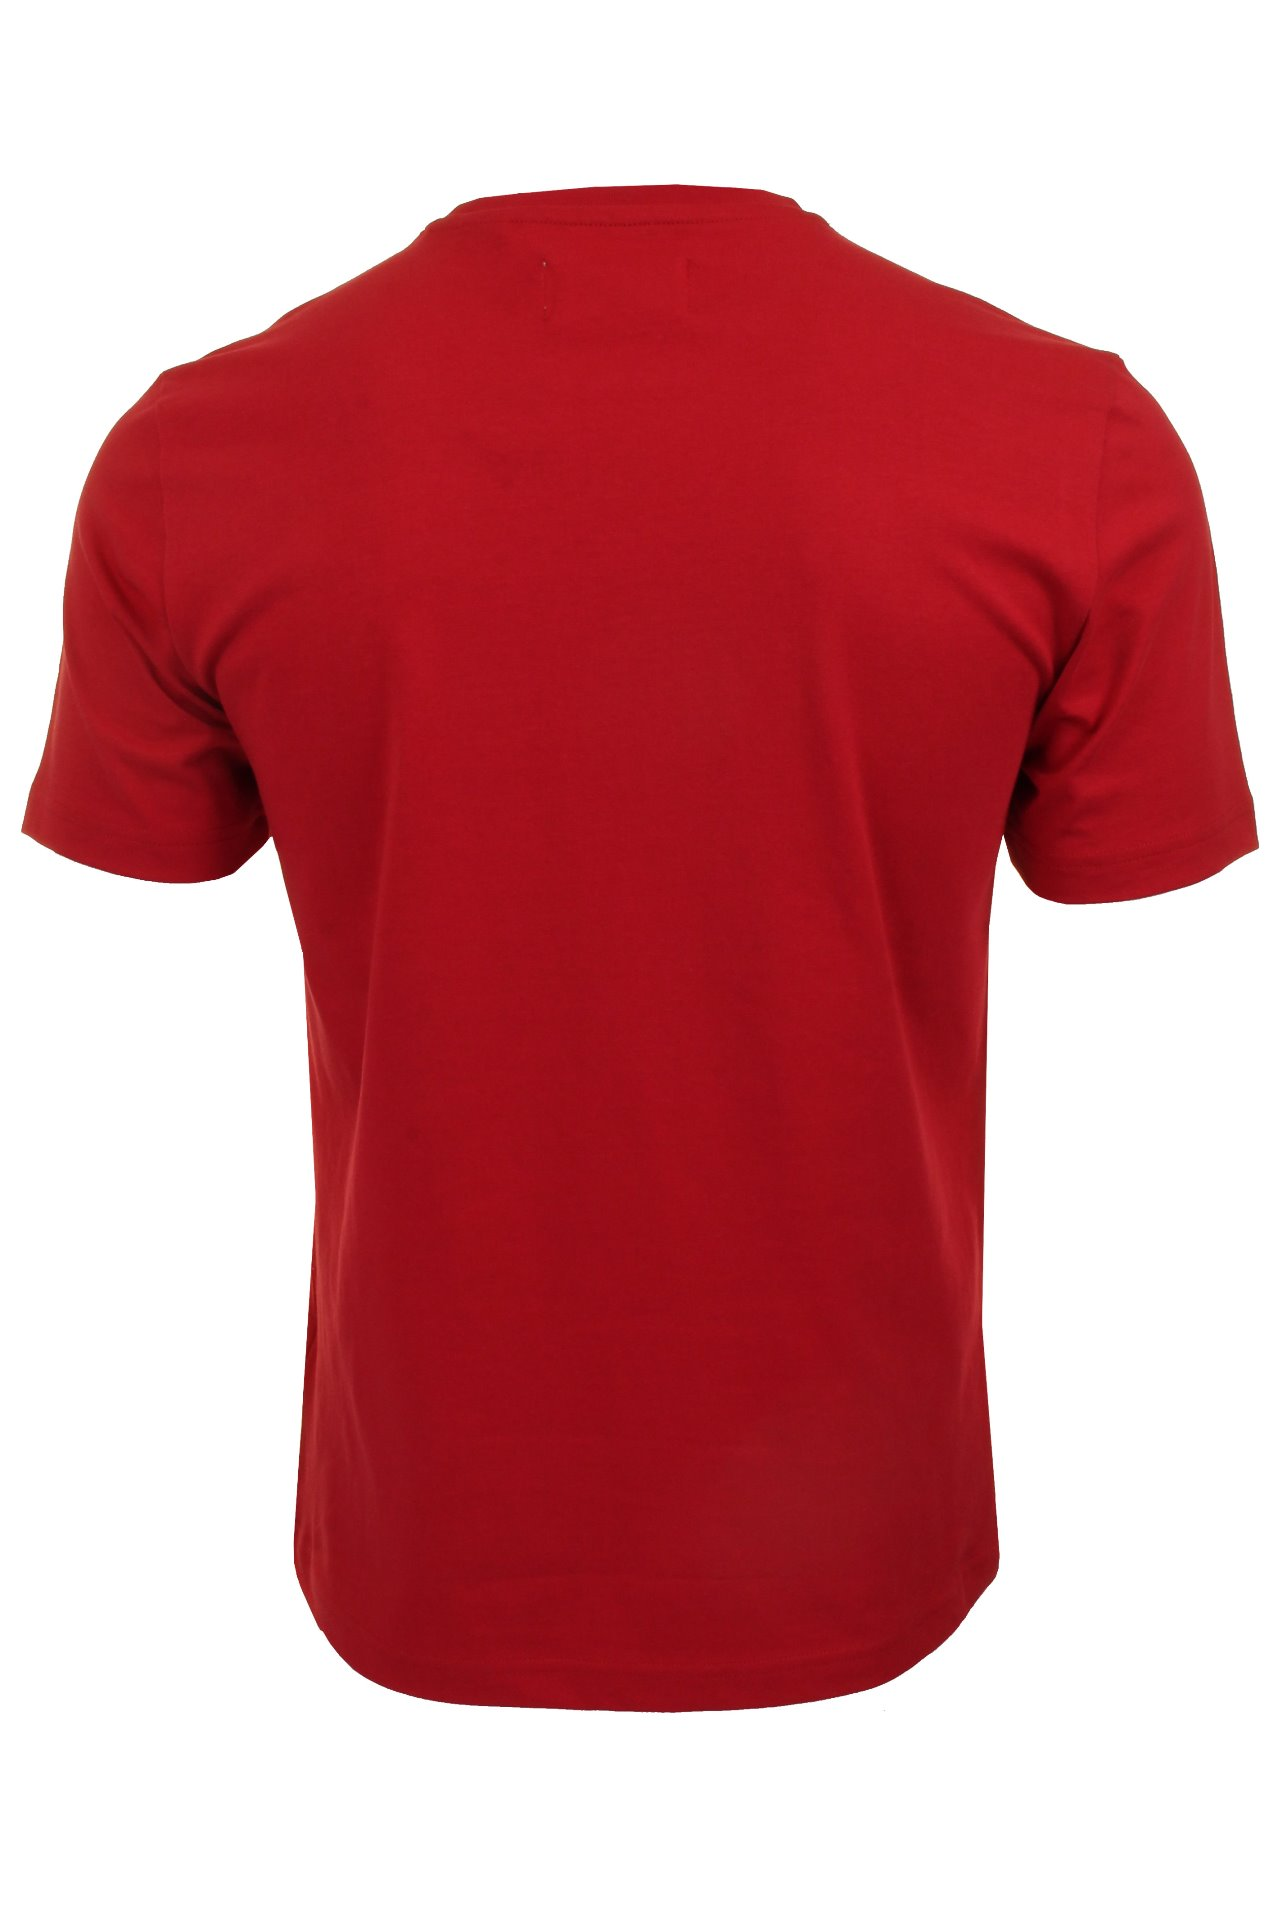 Original-Penguin-Mens-T-Shirt-039-Pin-Point-Embroidered-039-Short-Sleeved thumbnail 17